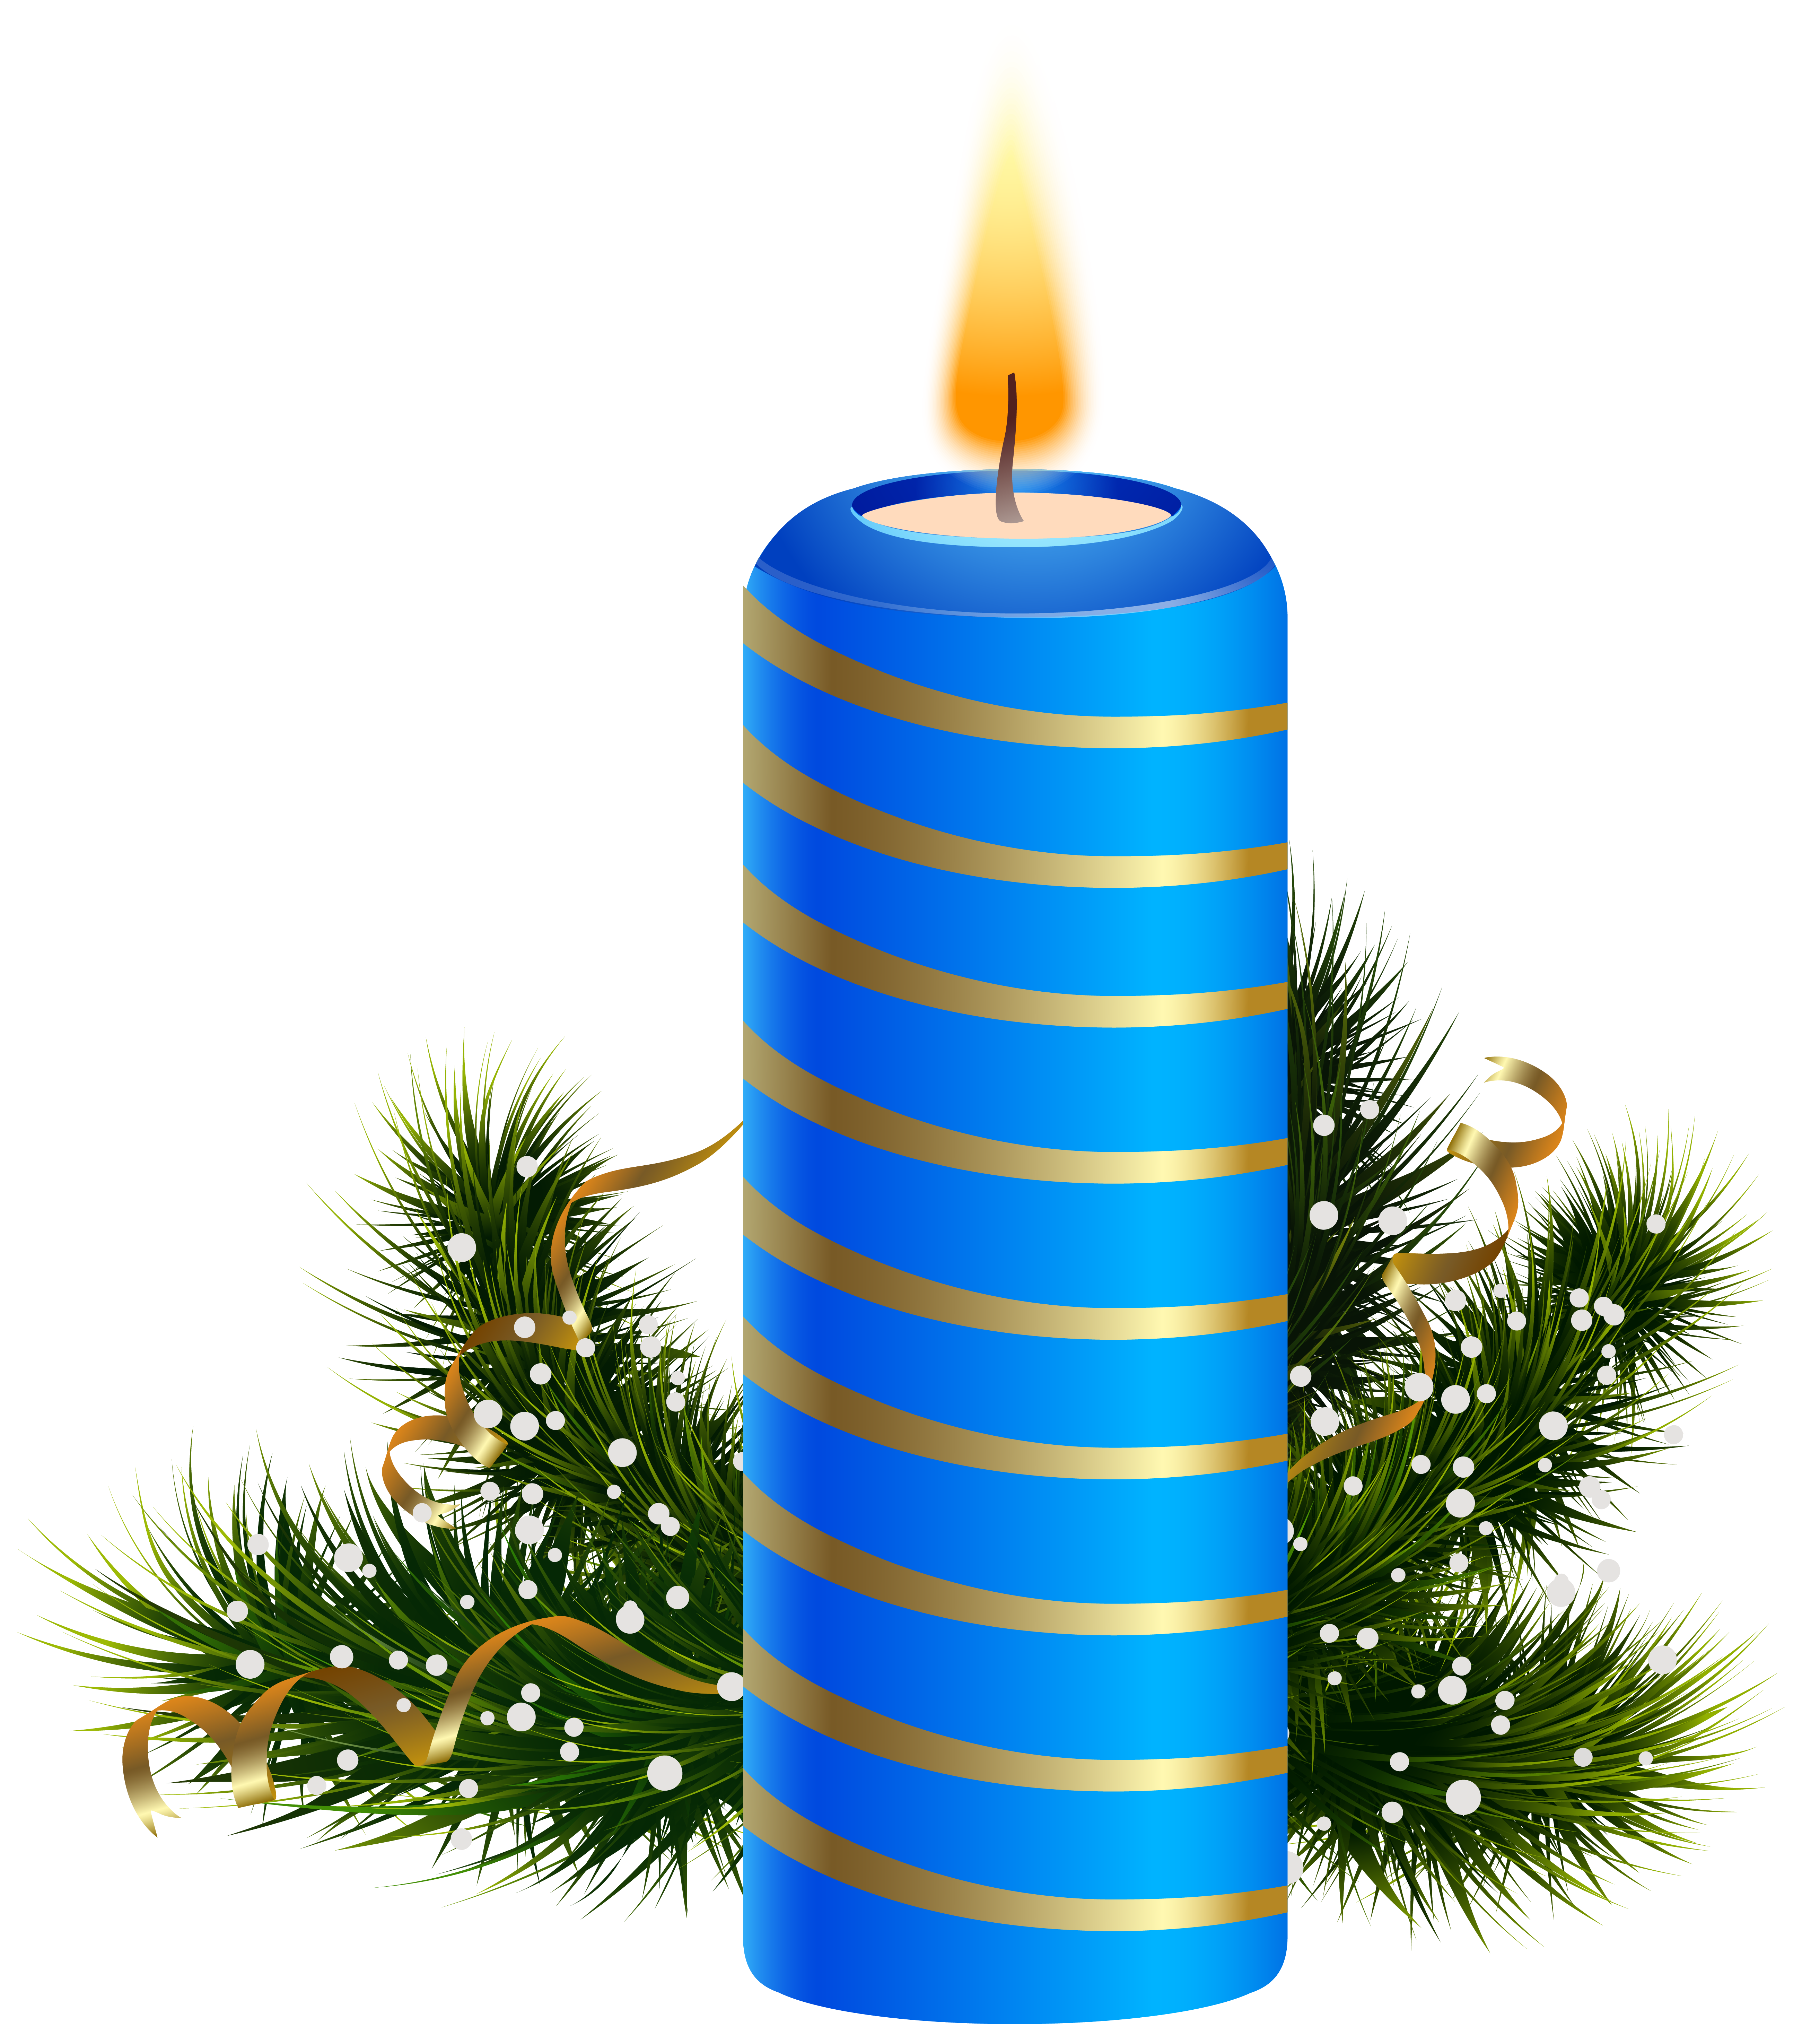 Silver christmas candles png. Blue candle clipart image